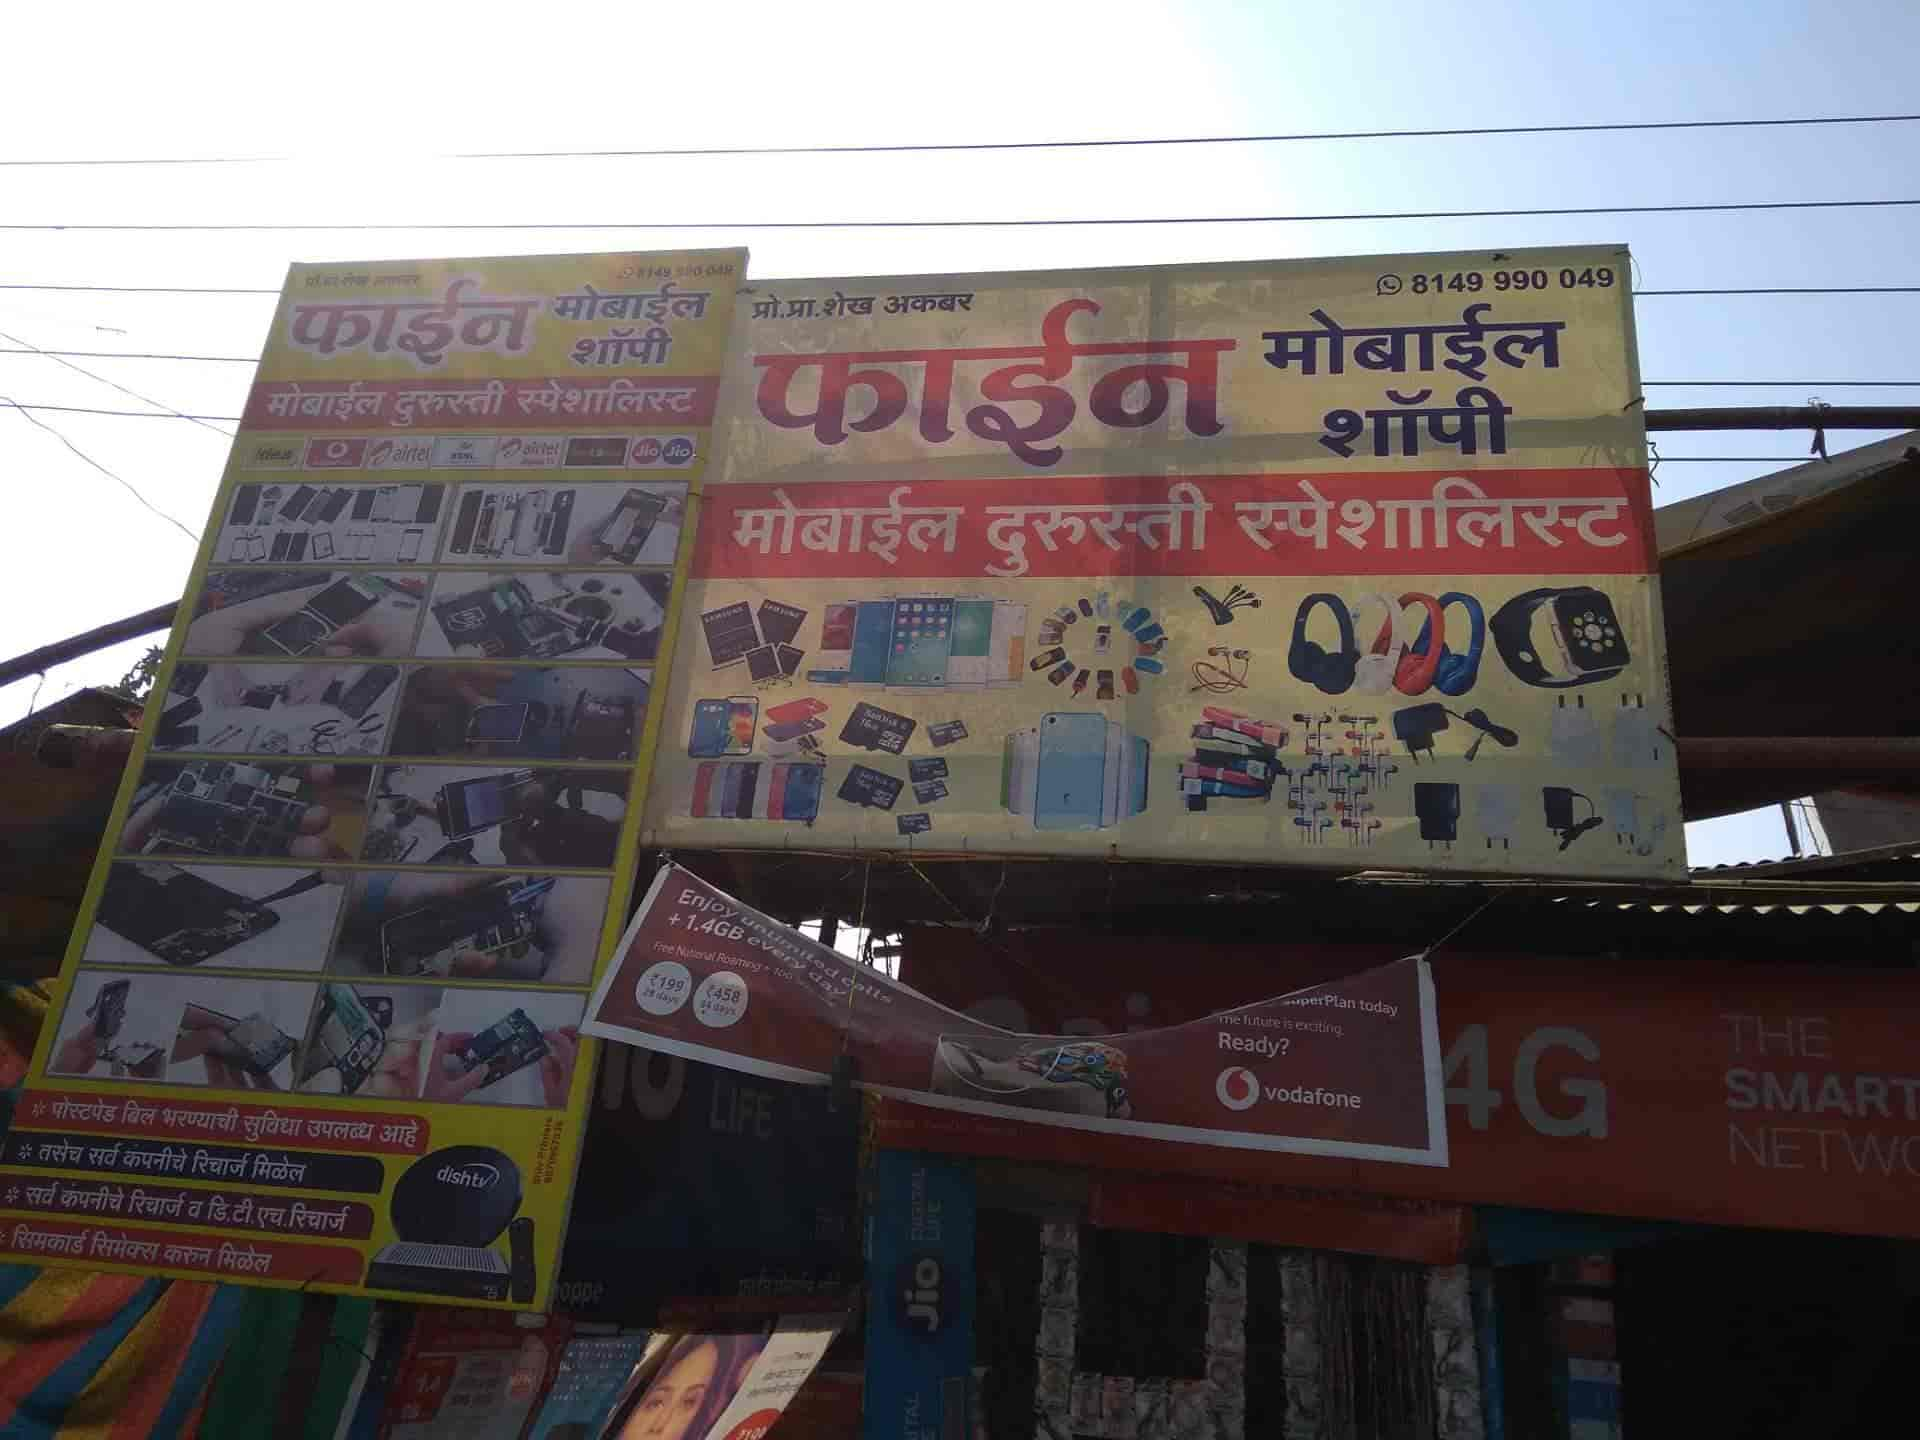 Fine Mobile Shop, Parbhani HO - Mobile Phone Dealers in